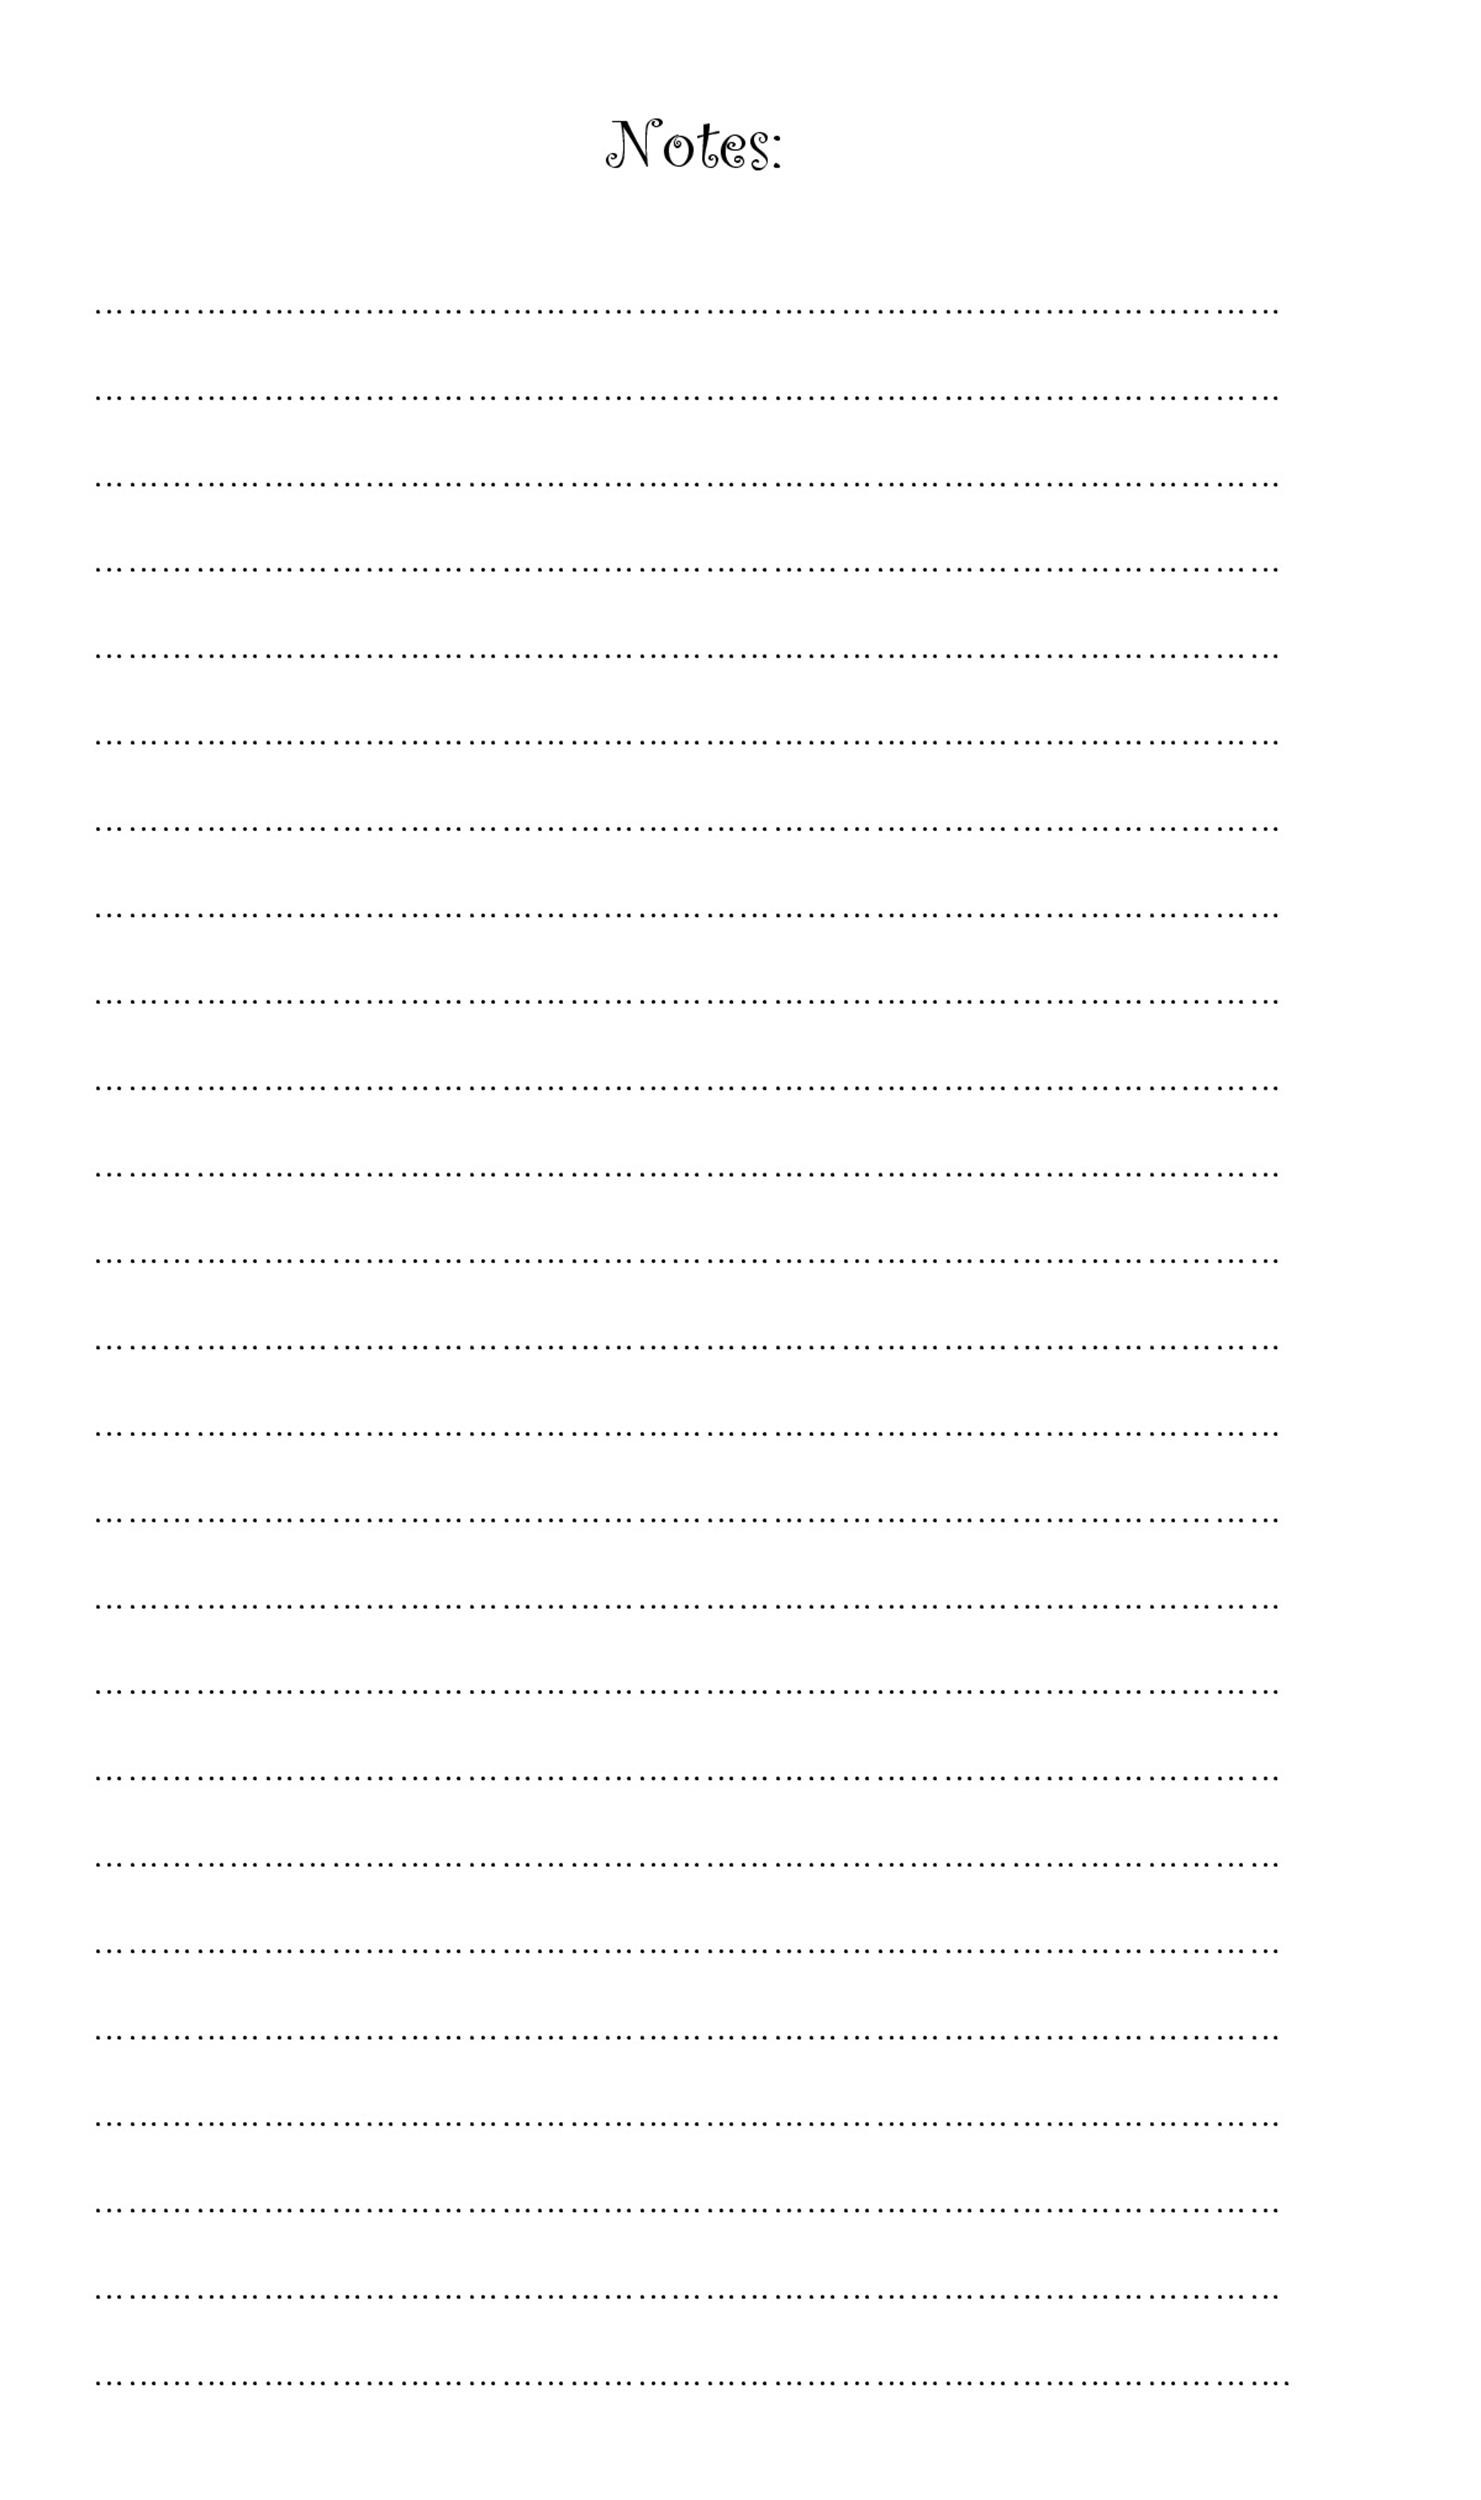 Free lined paper template 01